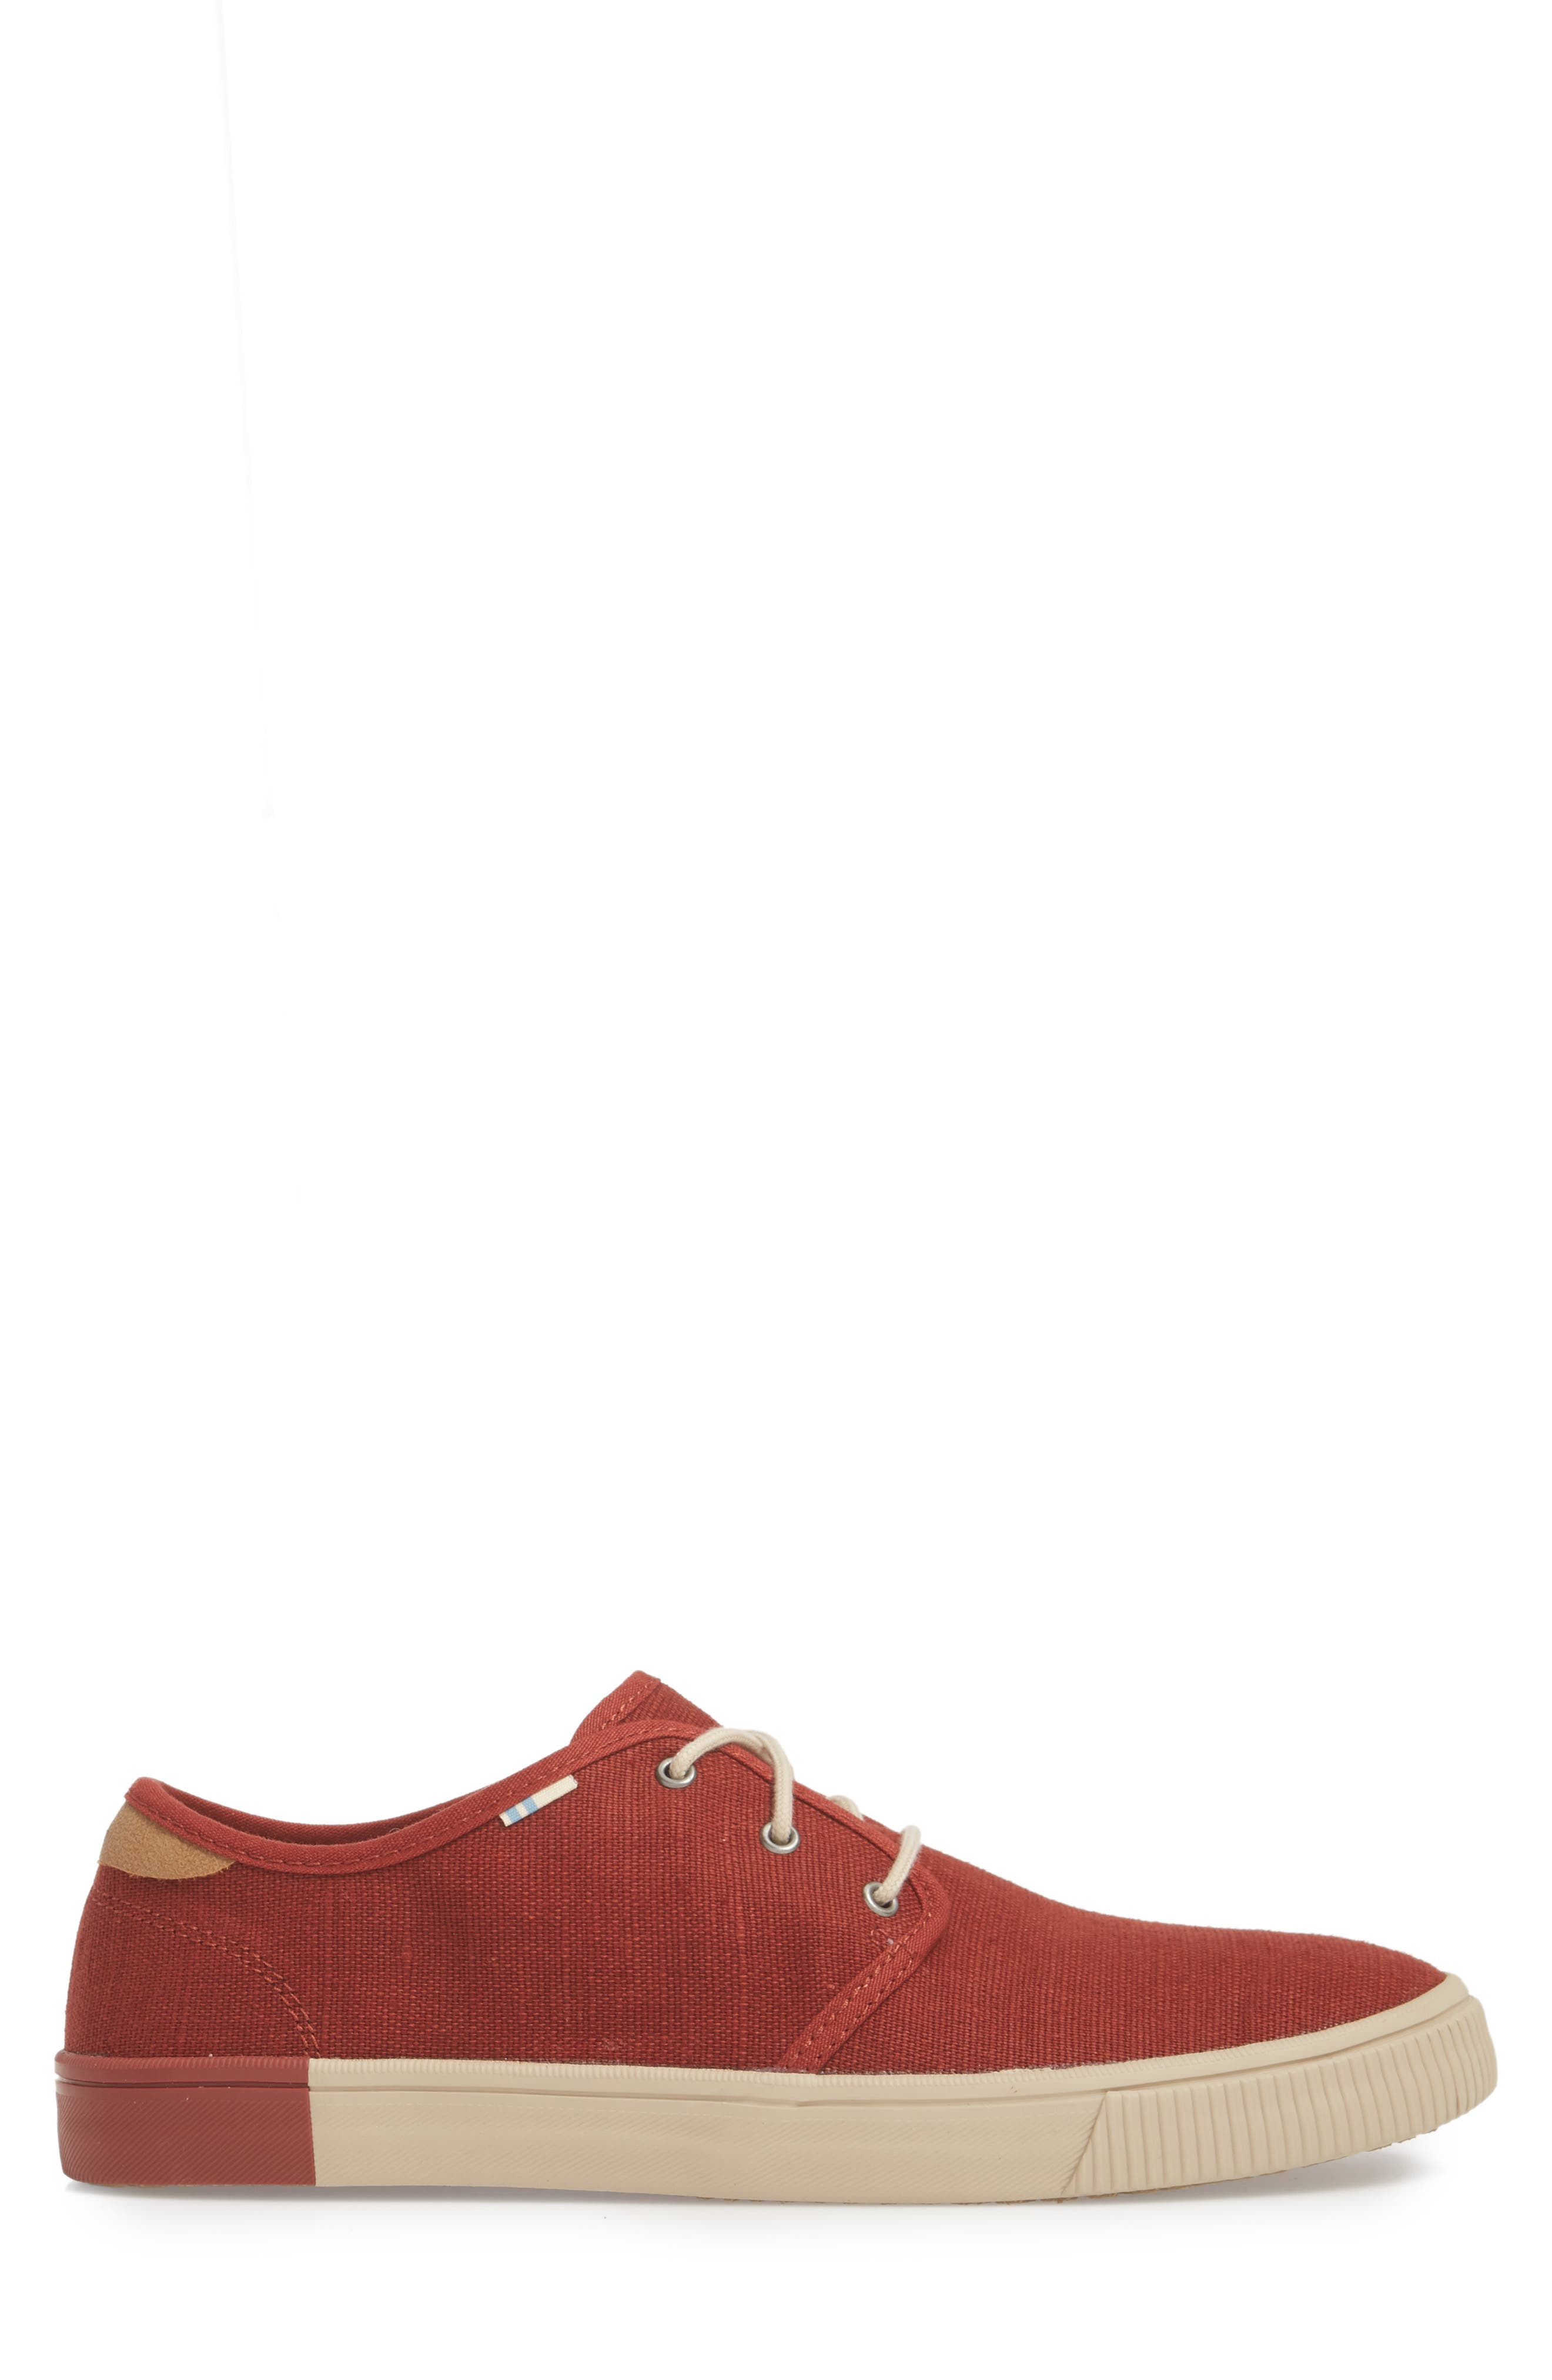 Carlo Low Top Sneaker,                             Alternate thumbnail 4, color,                             Burnt Henna Heritage Canvas